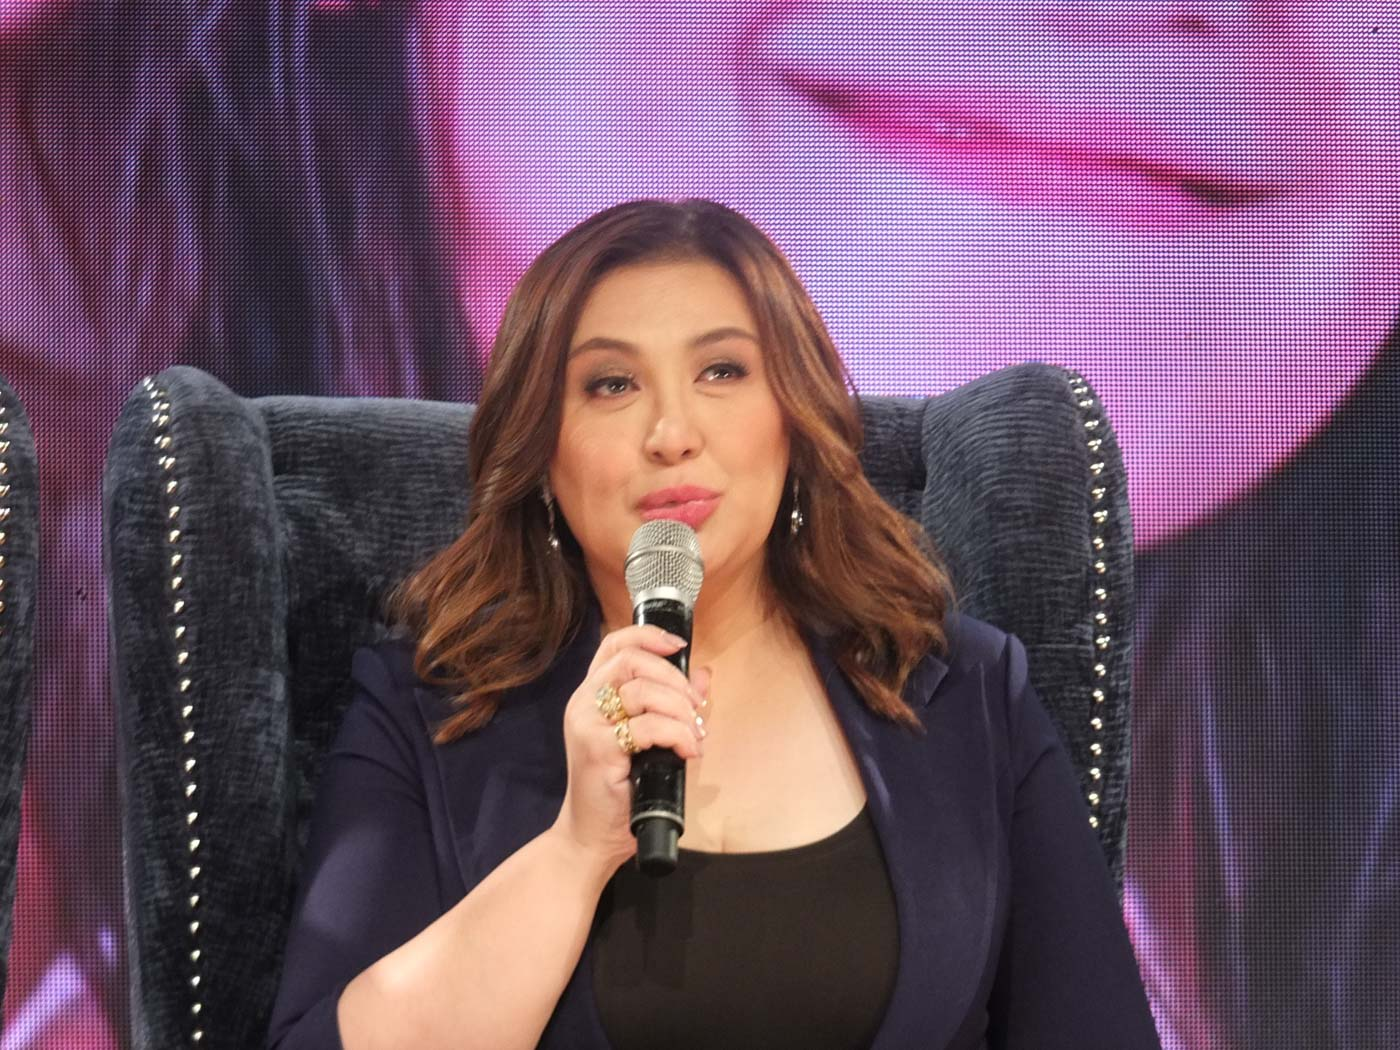 LOOKING FORWARD. Sharon Cuneta says she's looking forward to the day daughter KC will settle down.